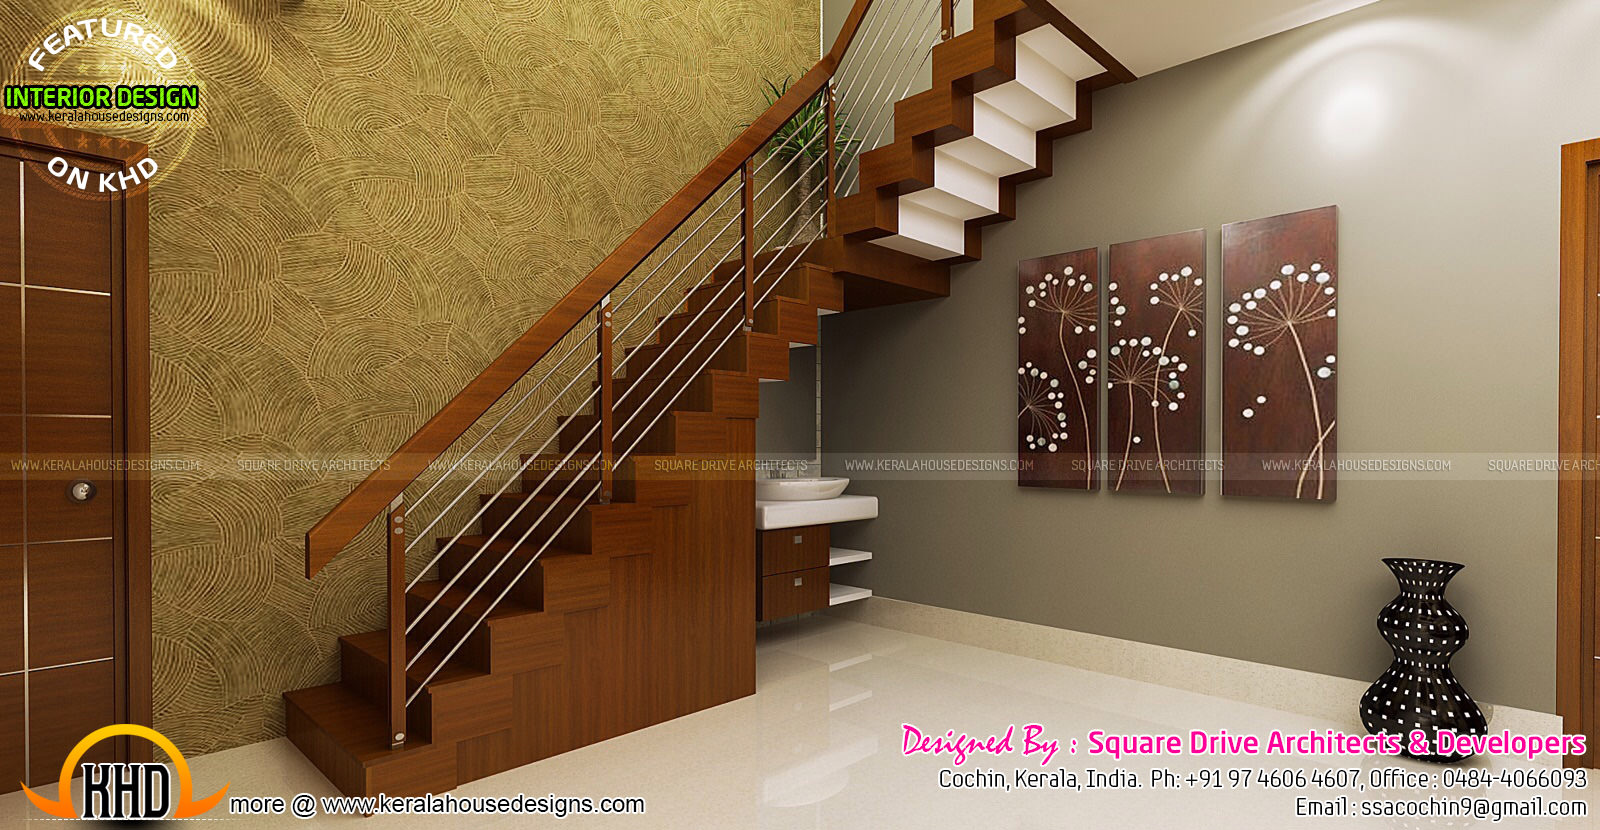 Stair area, Upper living, Bedroom interiors